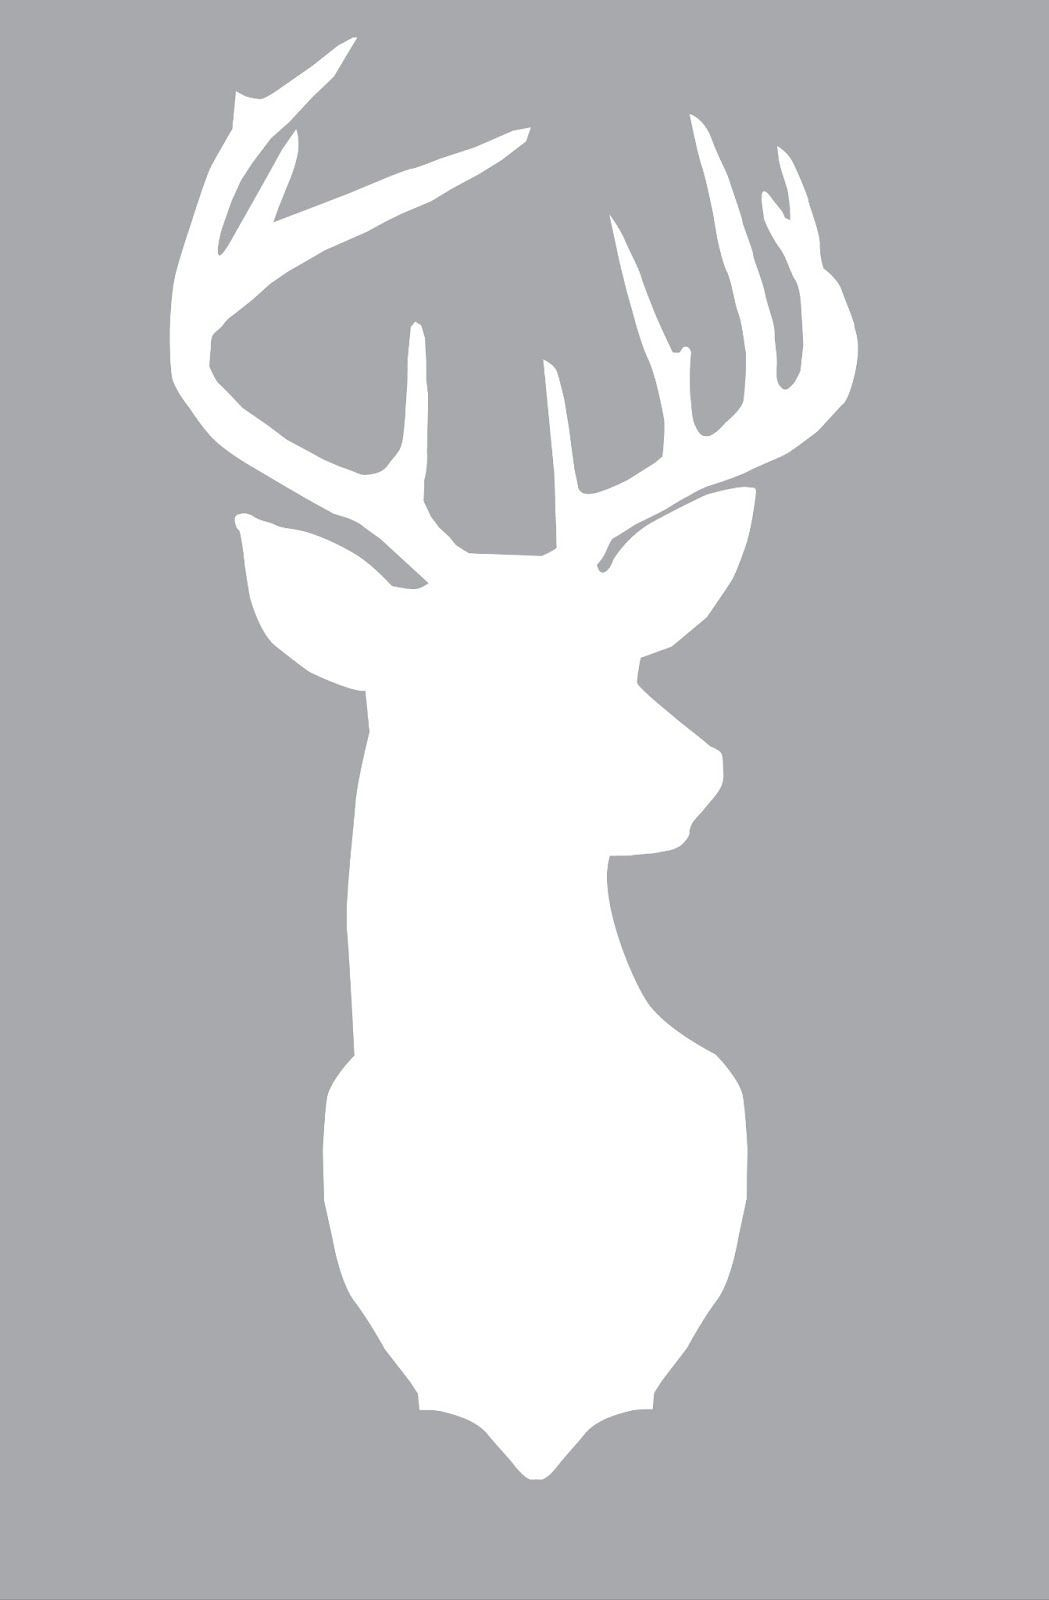 Stencil Deer Head for Crafts Projects Fabric Signs Pillows Cards